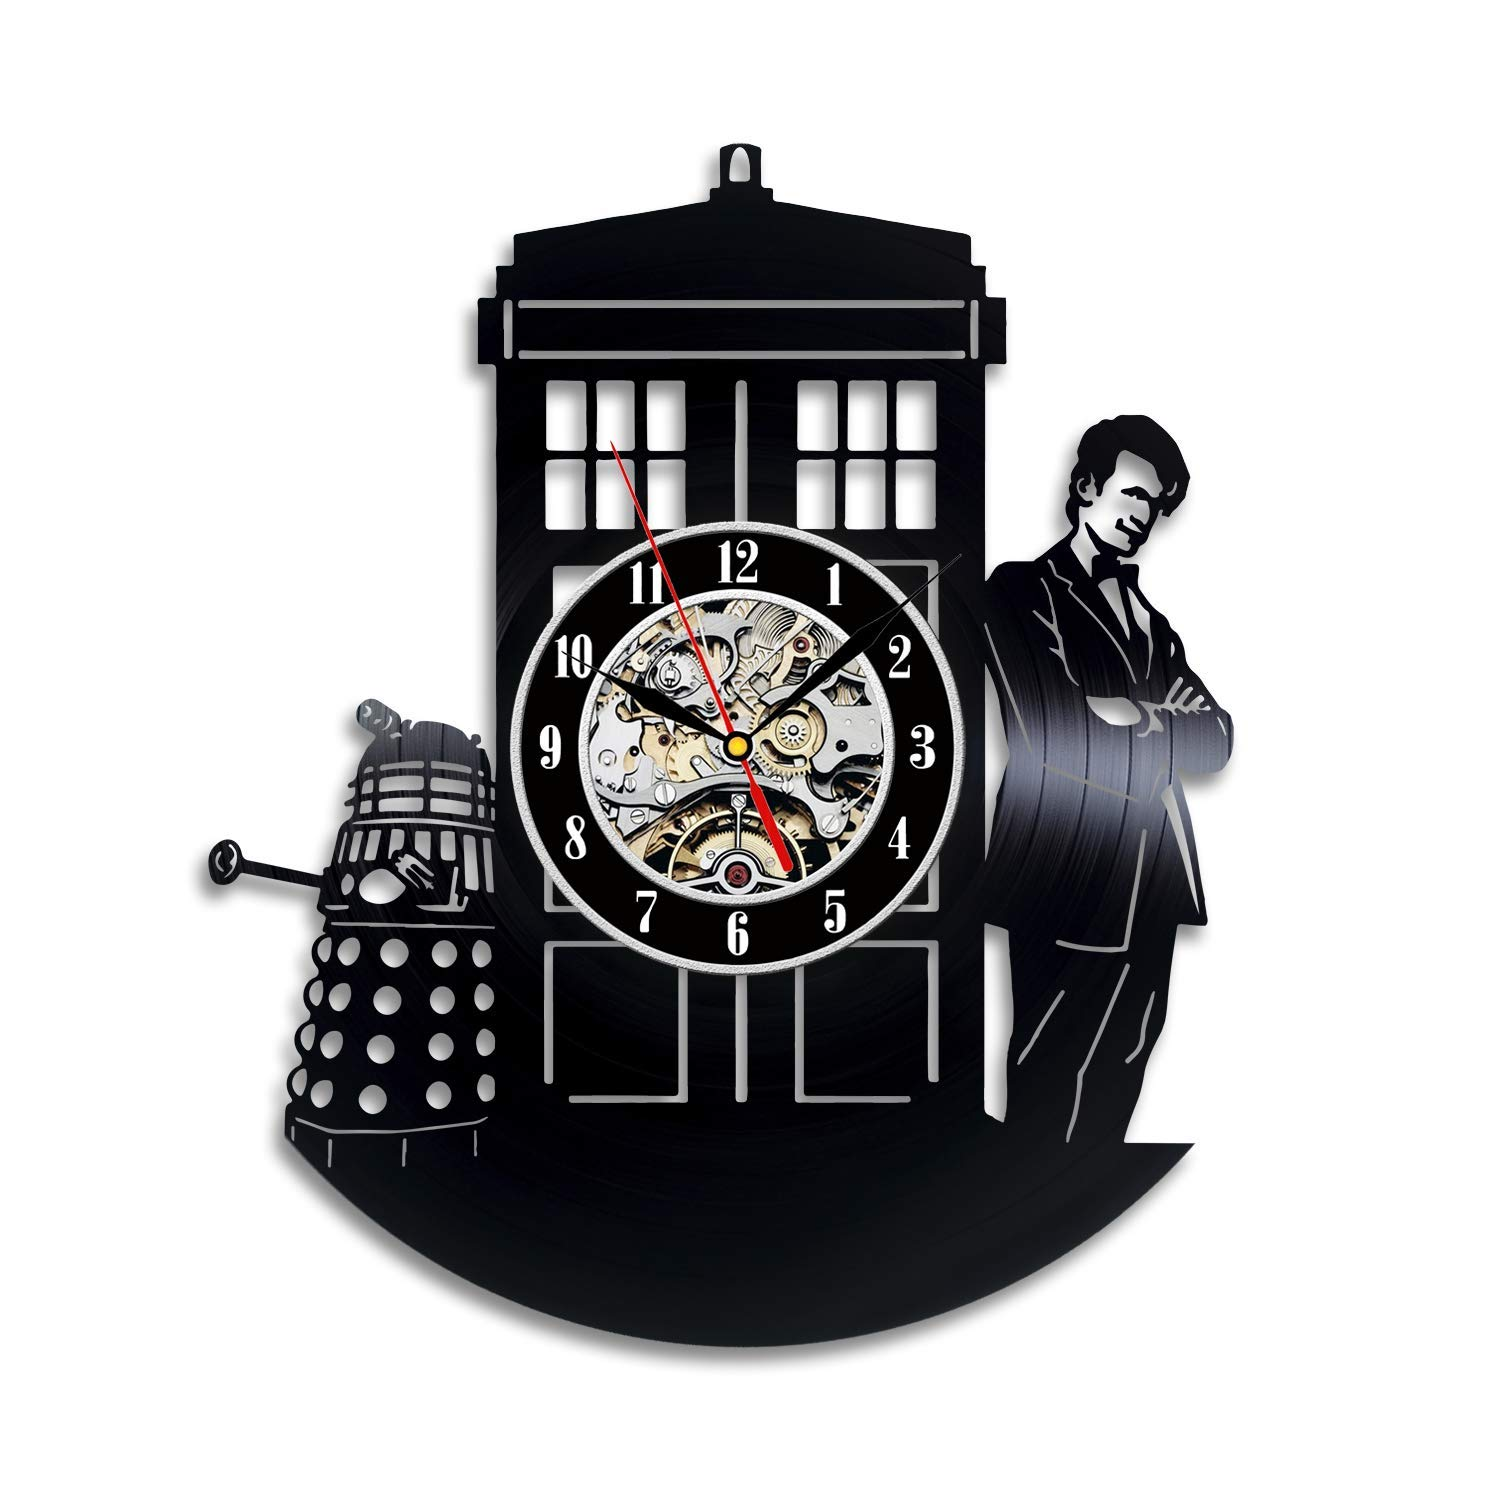 Doctoe Who Vinyl Record Clock, The Doctor Wall Decor, Daleks Handmade Home Decor, Cybermen Vinyl Wall Clock, Gifts for Friend